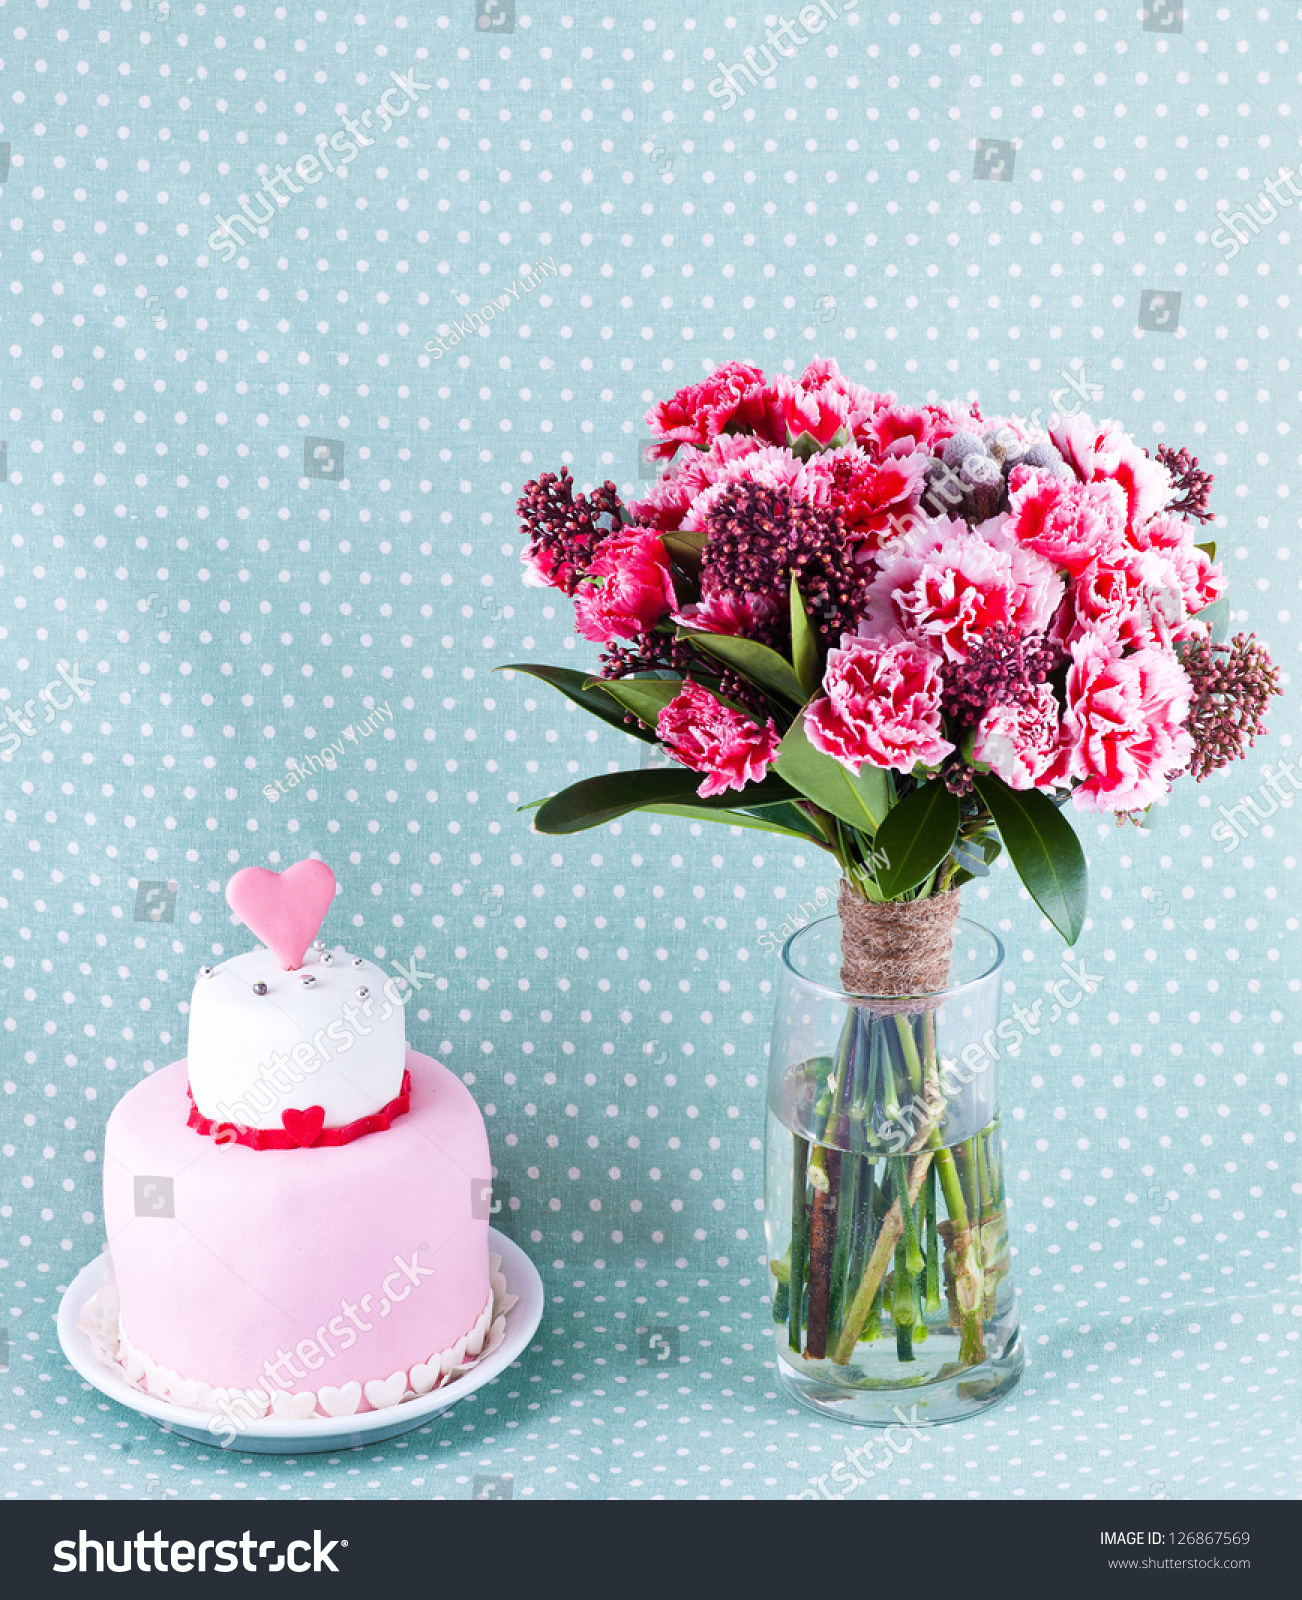 Bouquet flowers cake red hearts stock photo royalty free 126867569 bouquet of flowers and cake with red hearts izmirmasajfo